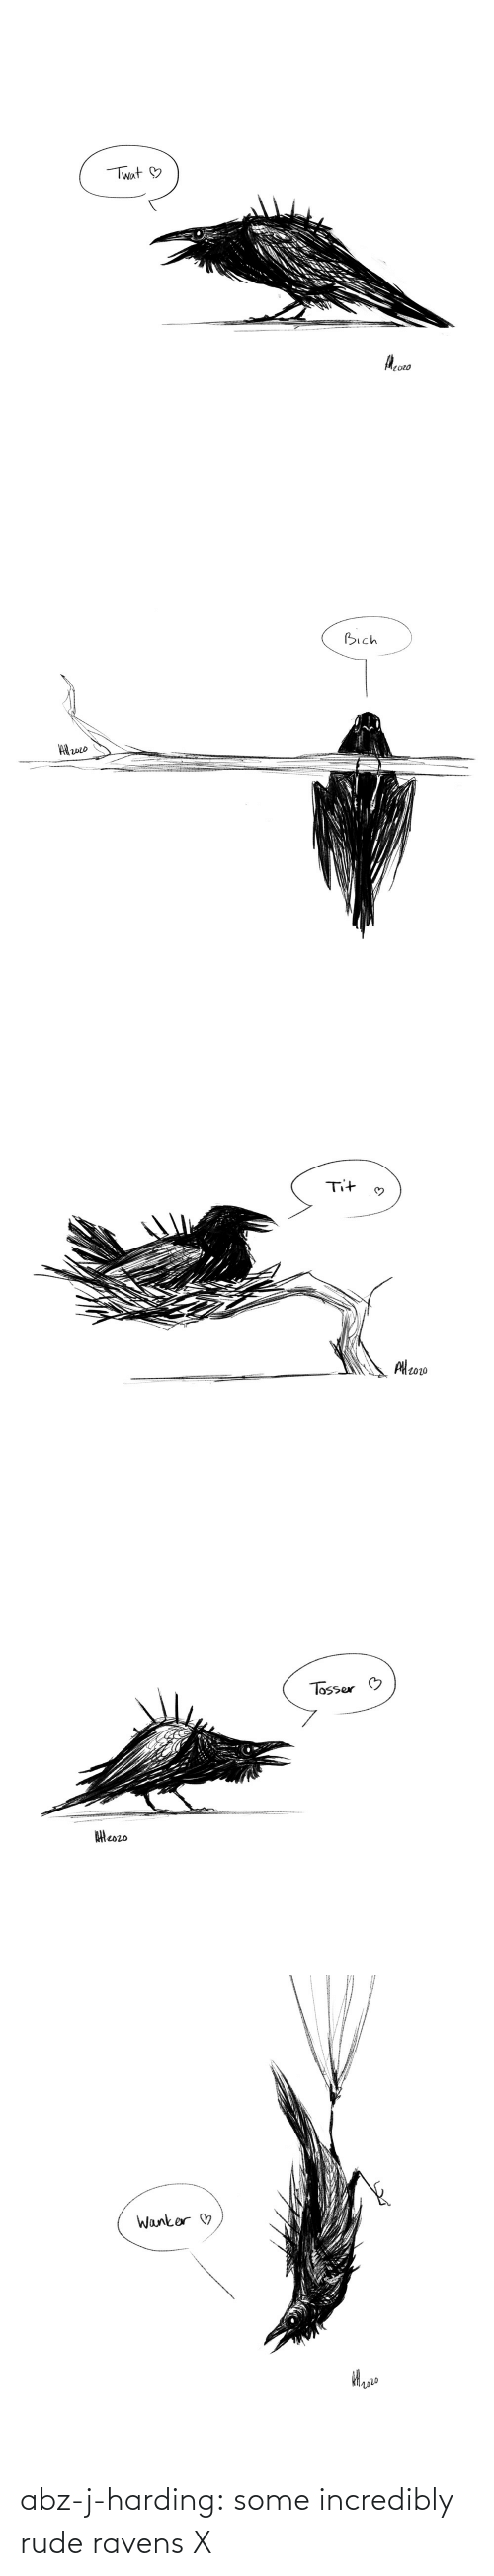 Rude: abz-j-harding: some incredibly rude ravens X